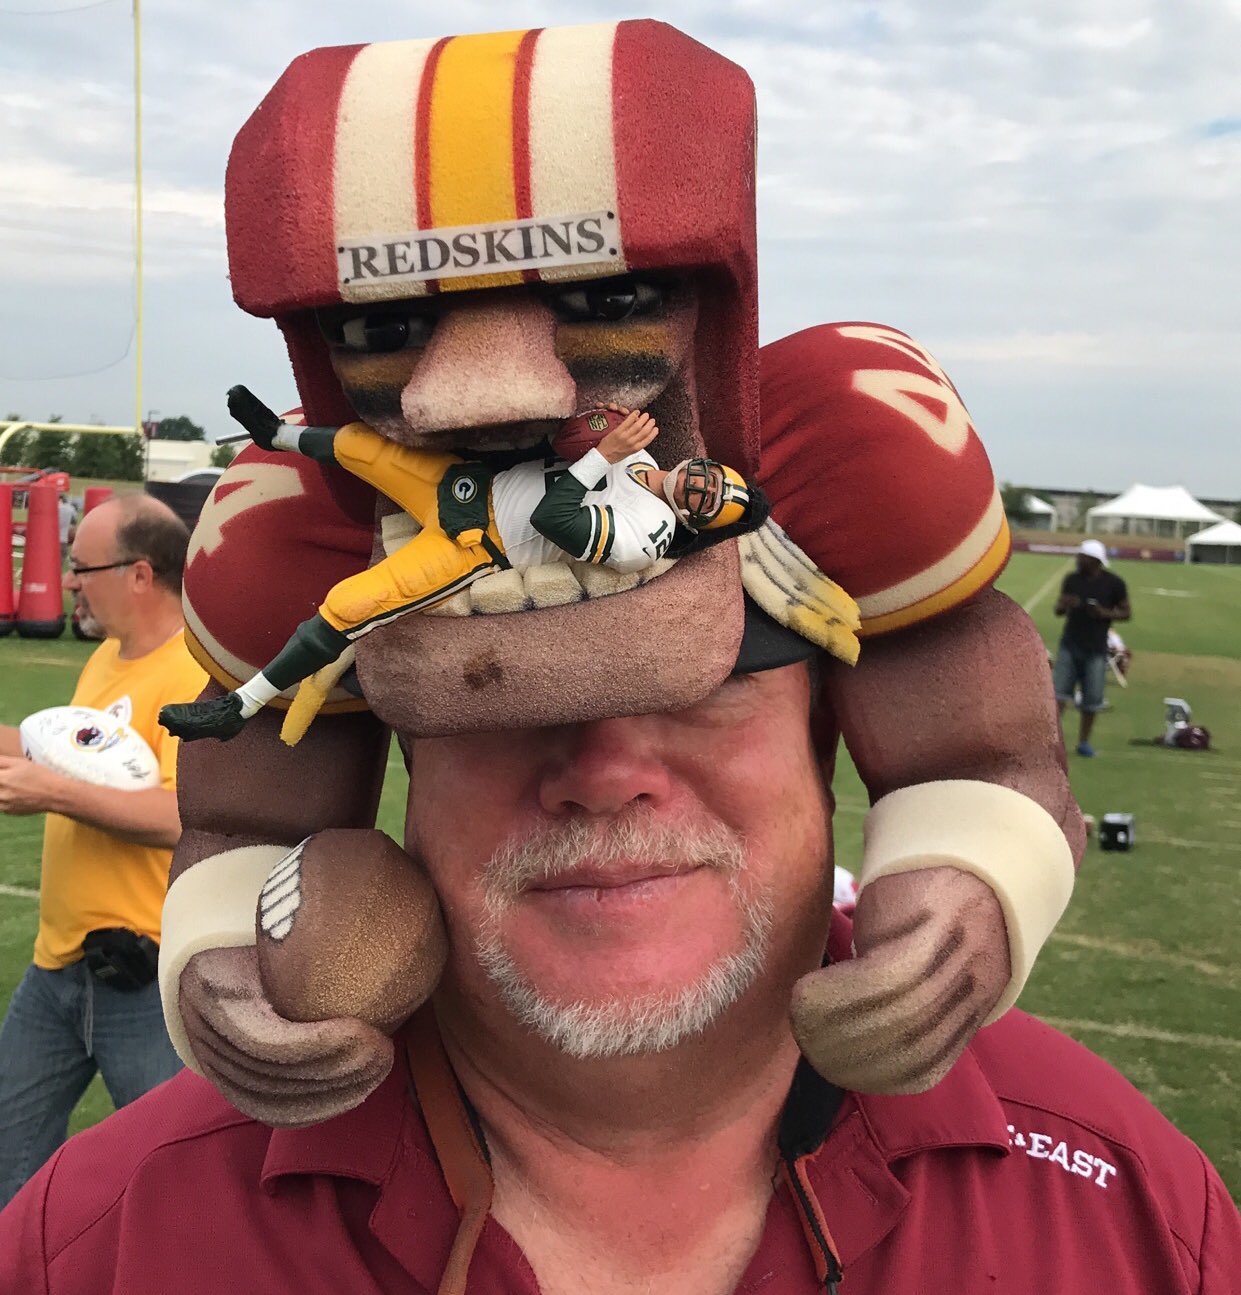 This guy is ready for #GBvsWAS. https://t.co/nU2SXGDOjA